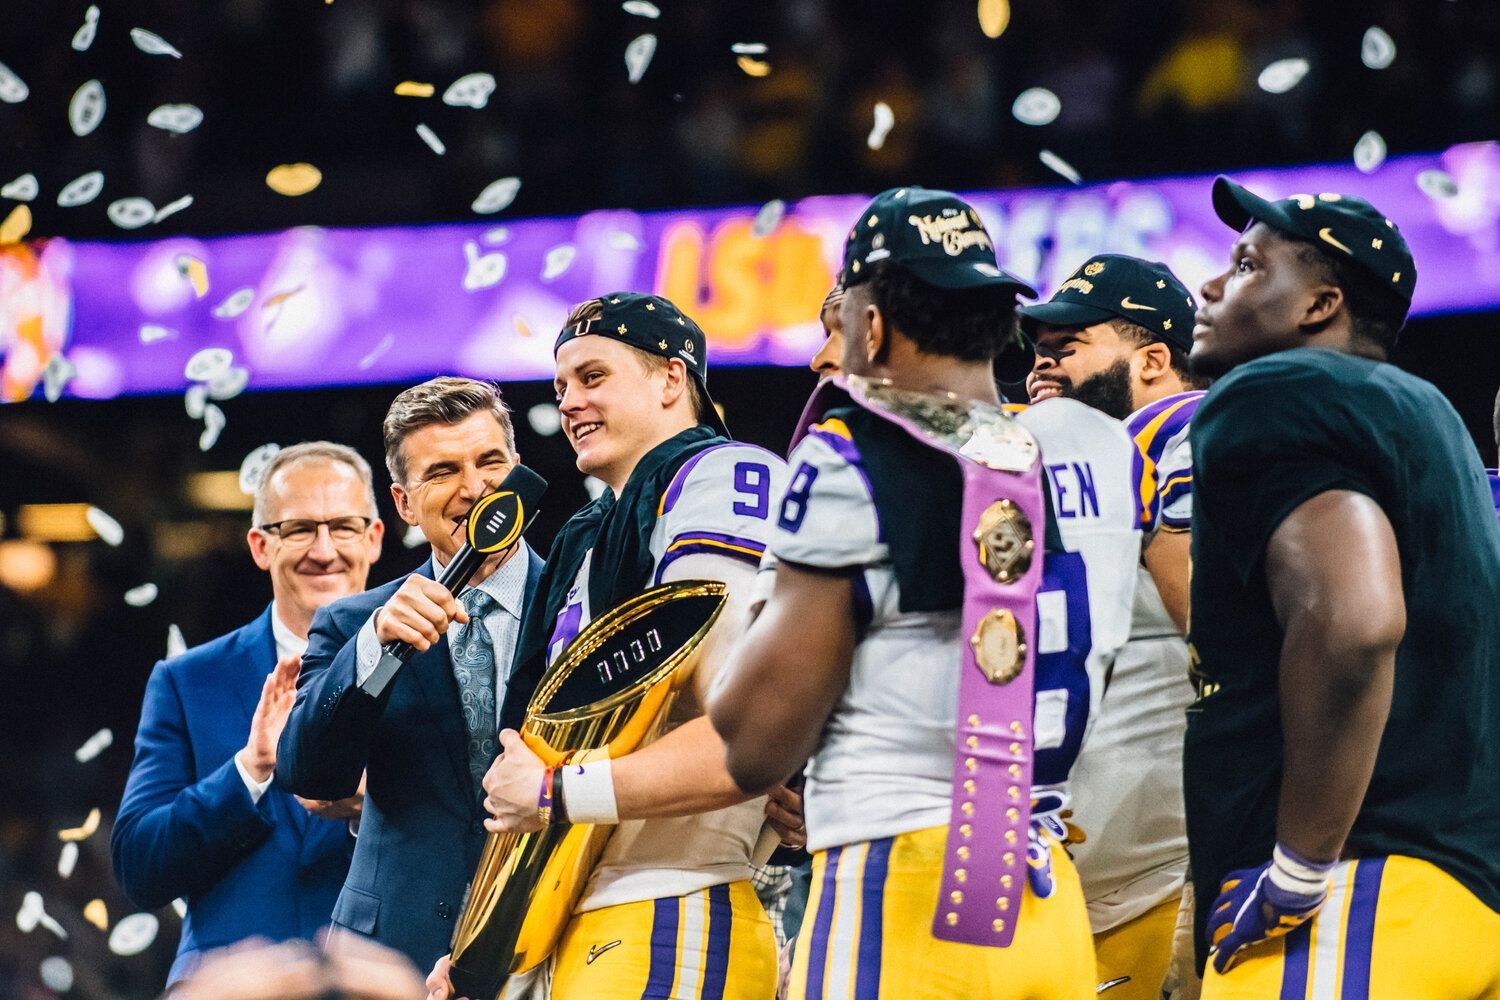 Lsu Football Undefeated Champions 2019 Sports Photography Jordan Hefler In 2020 Lsu Football Lsu Sports Photography